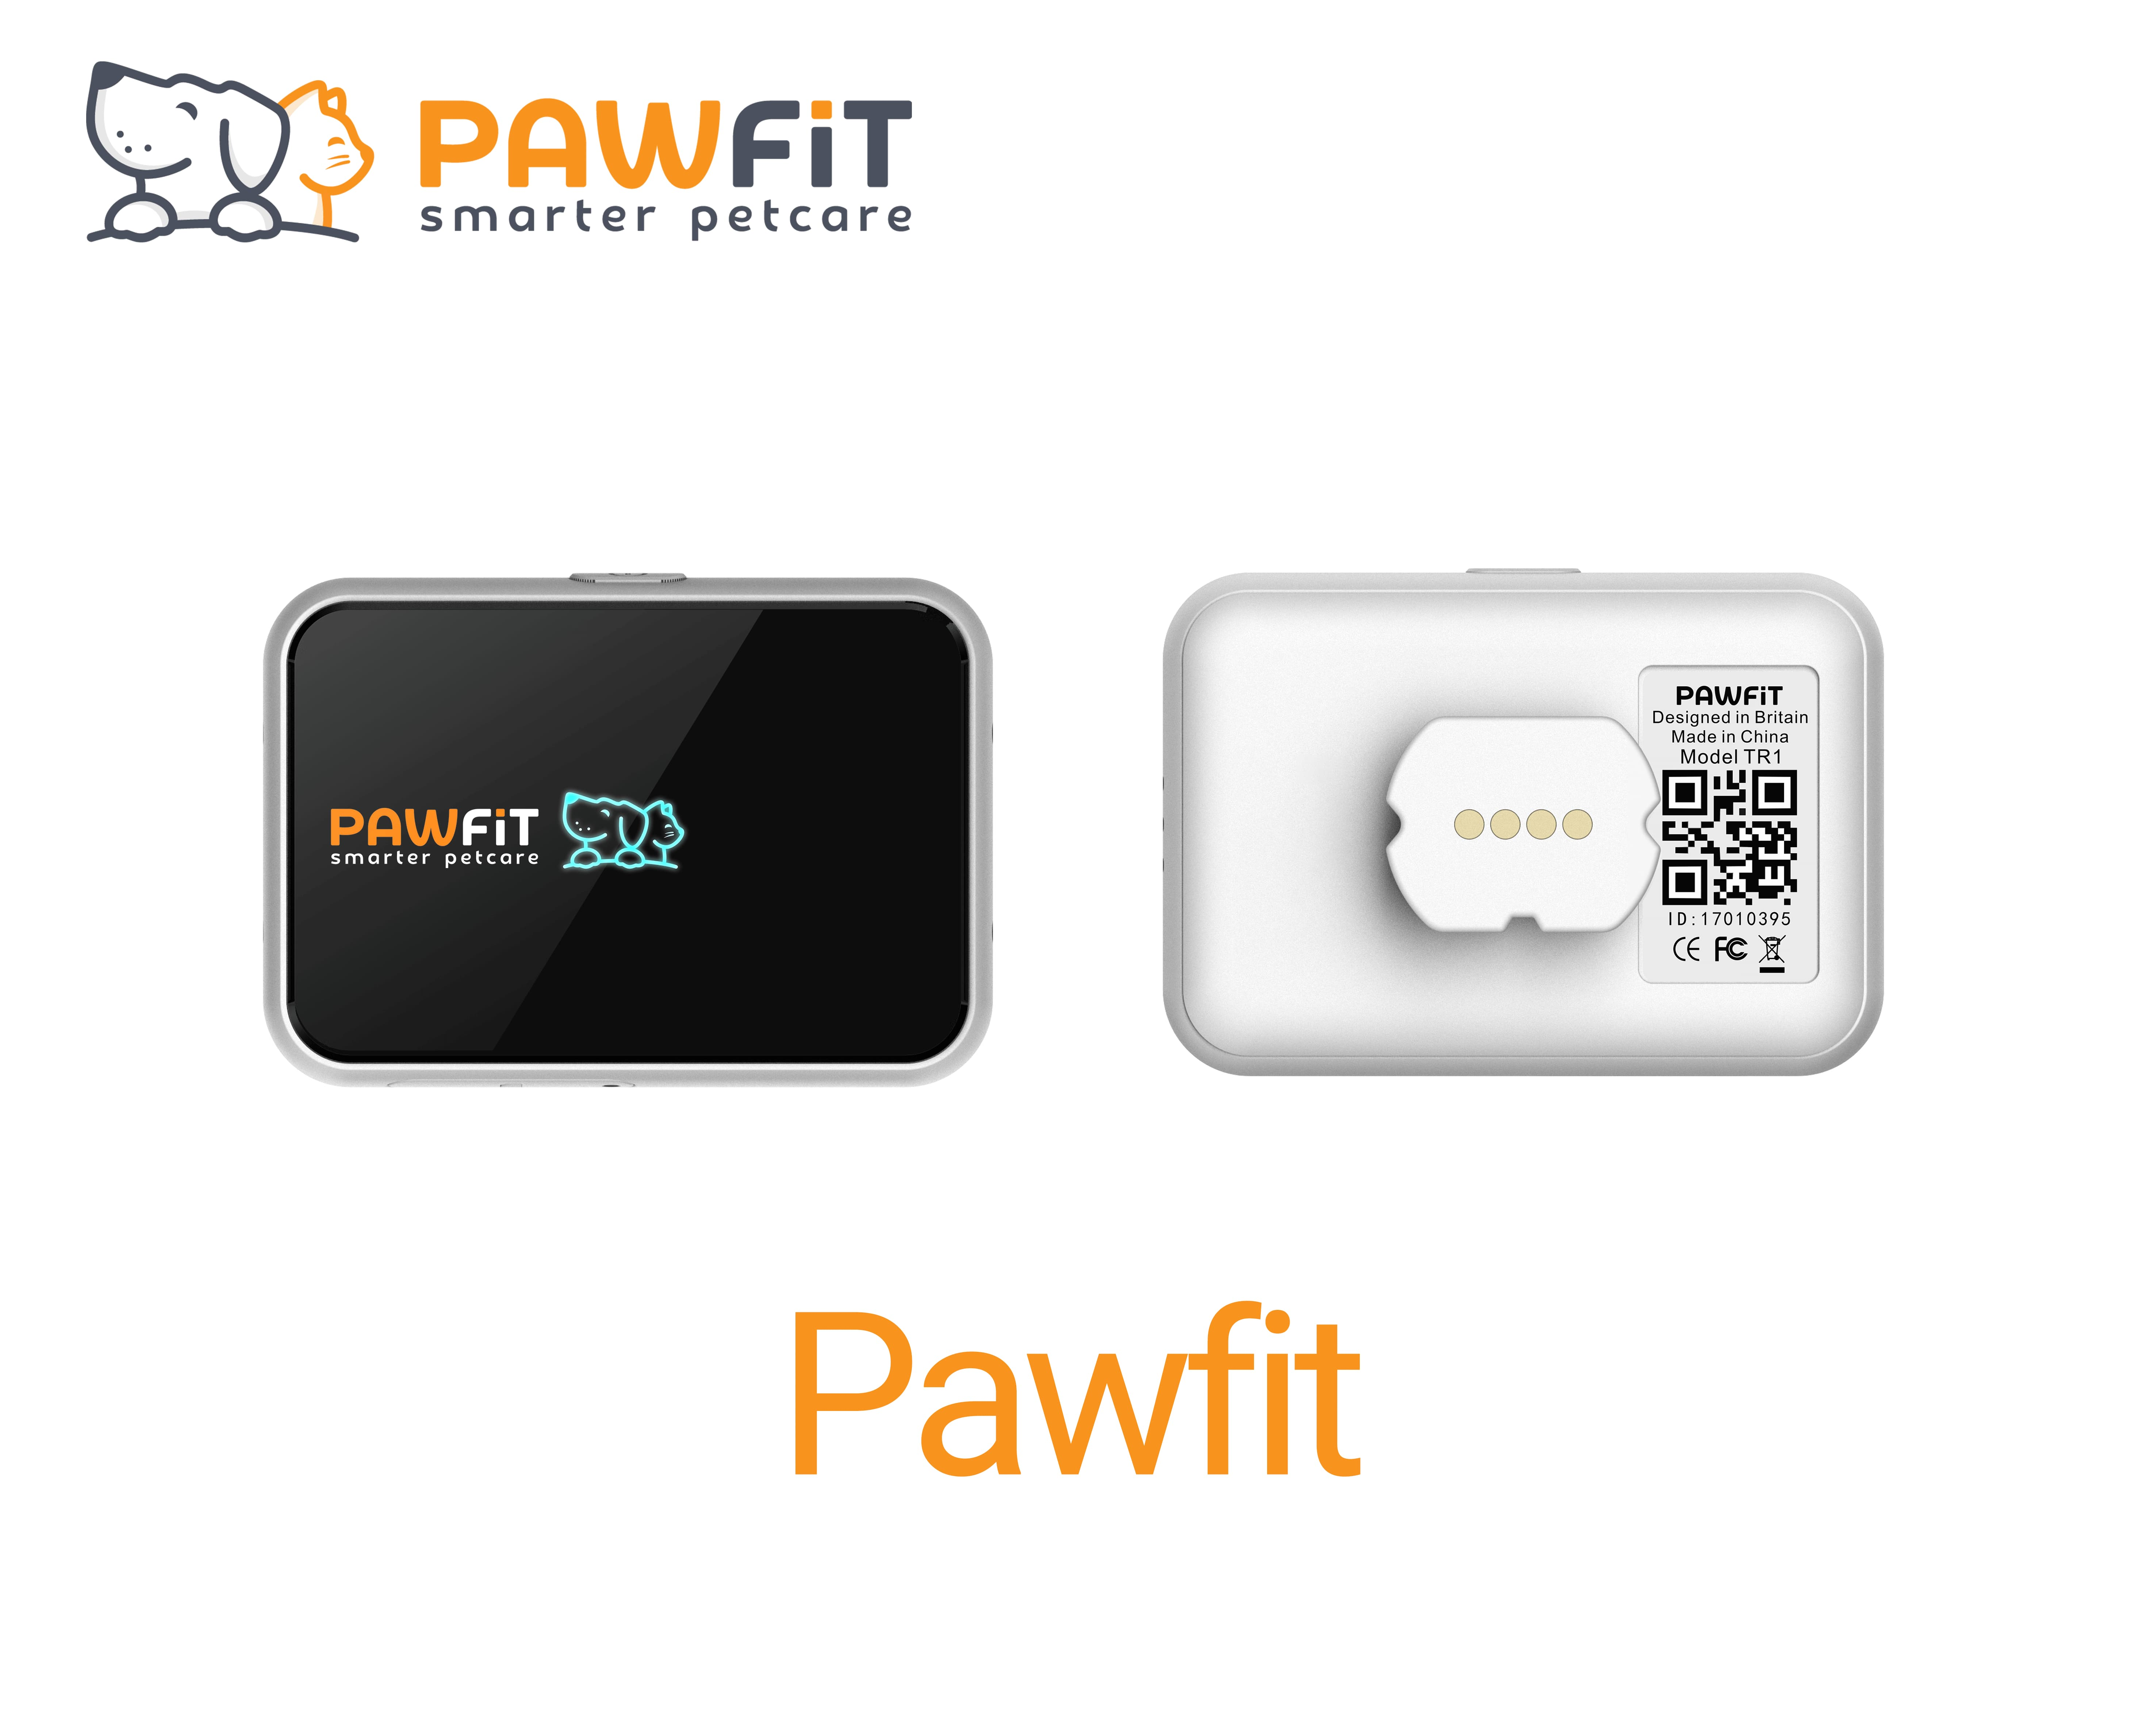 Pawfit front and back